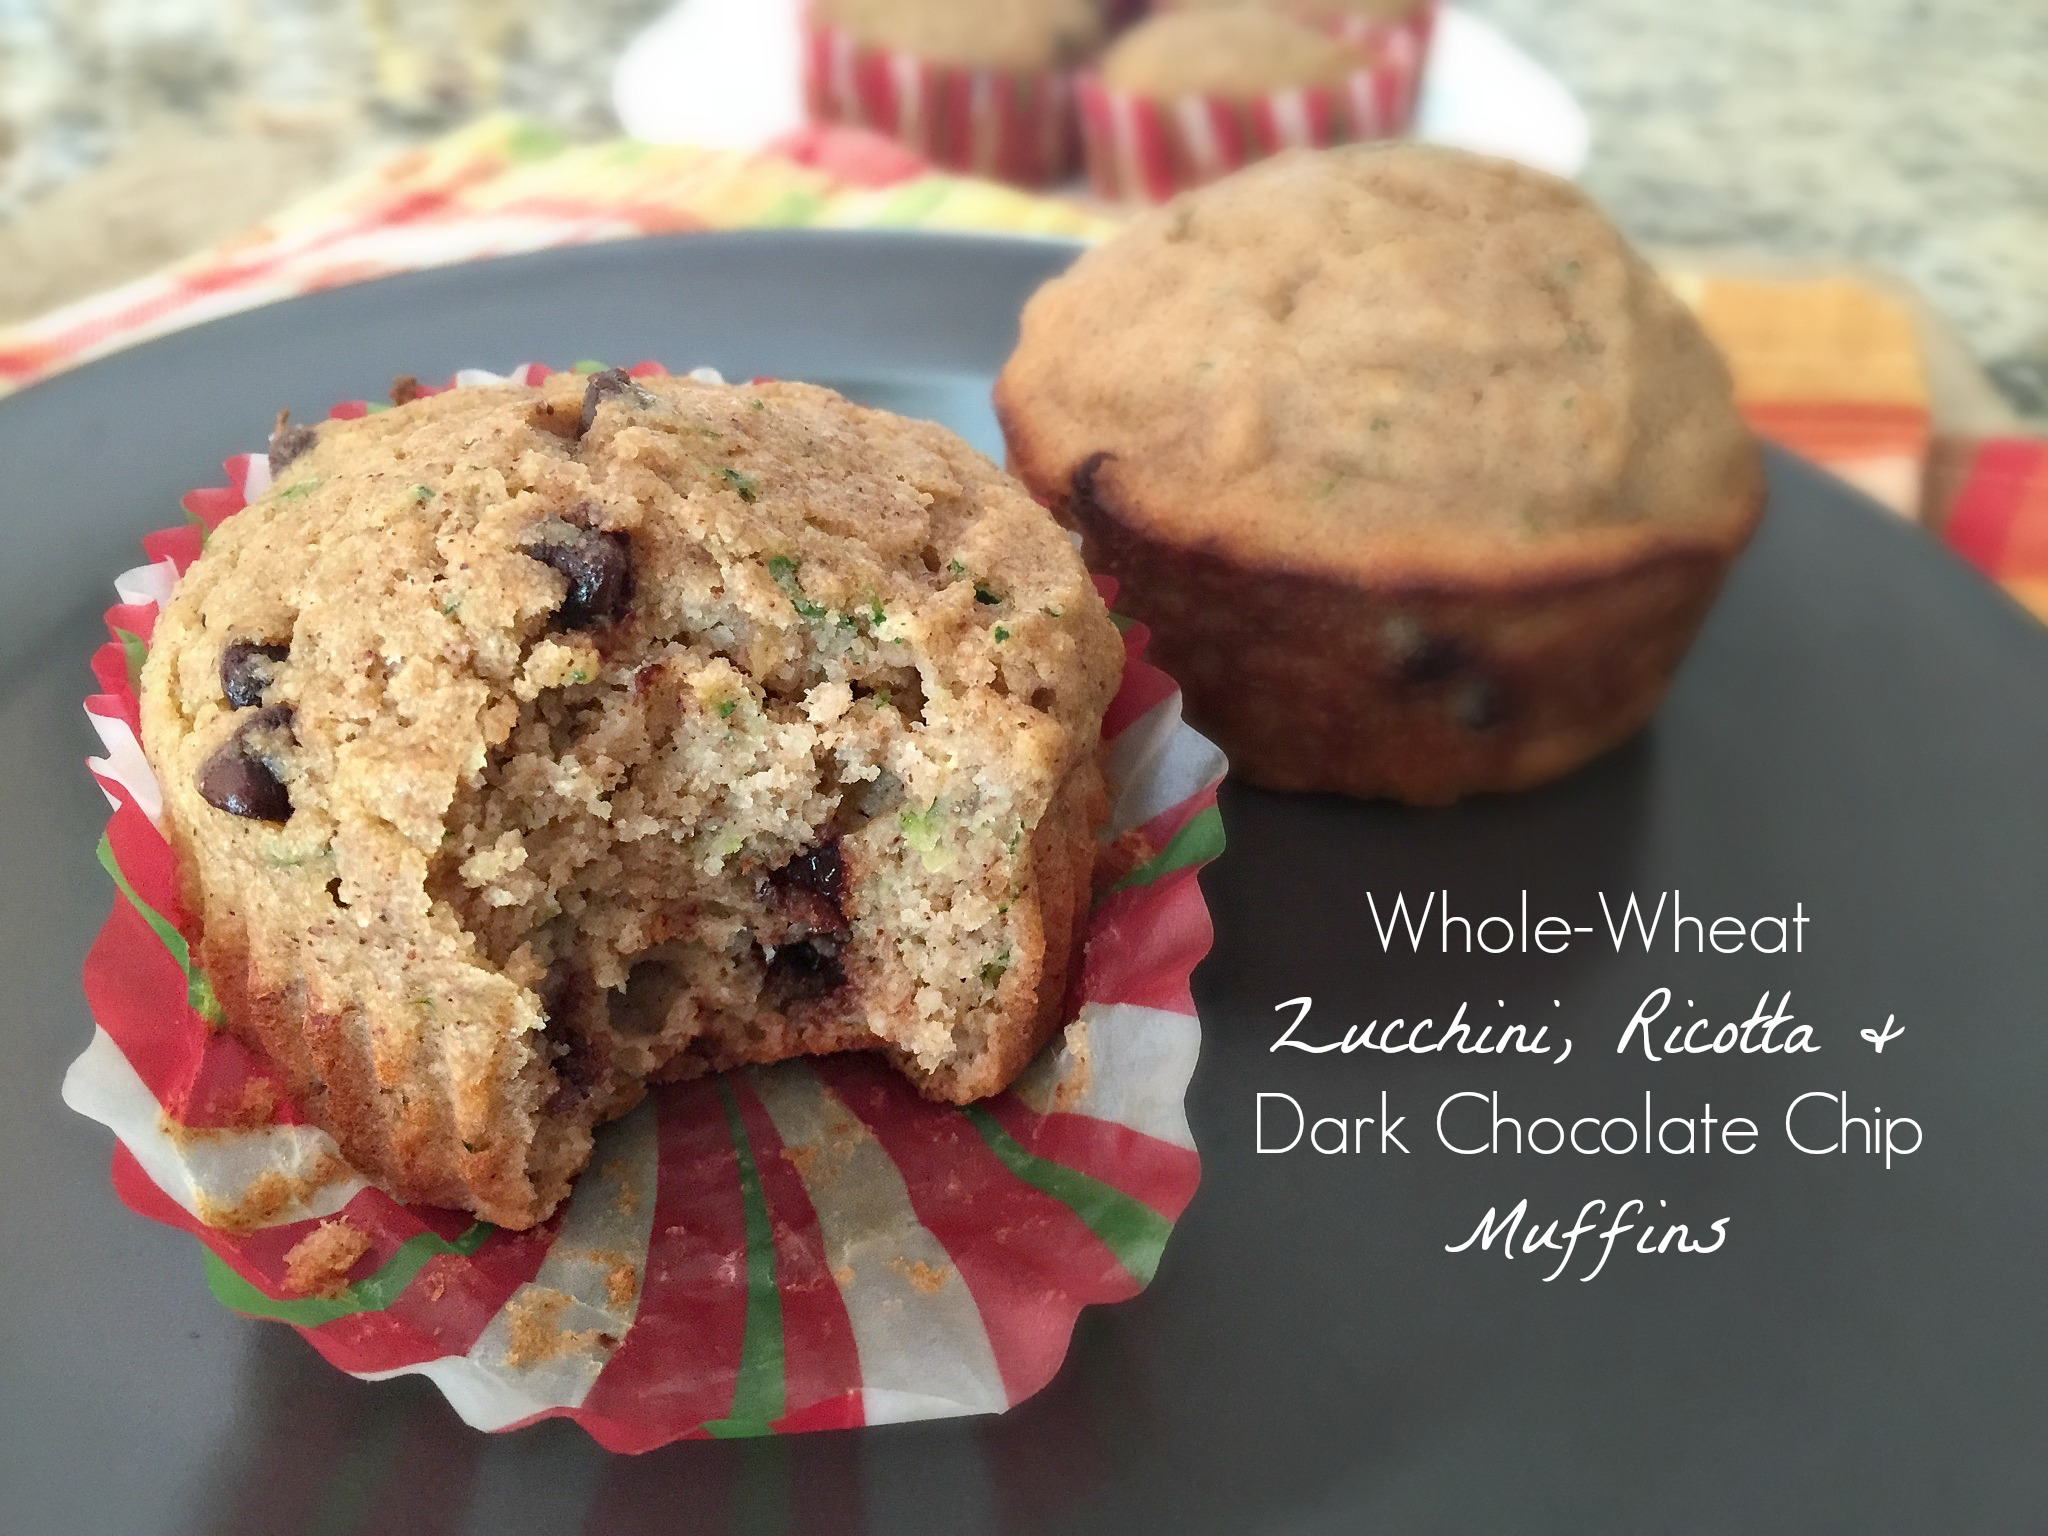 Whole Wheat Zucchini, Ricotta & Dark Chocolate Chip Muffins